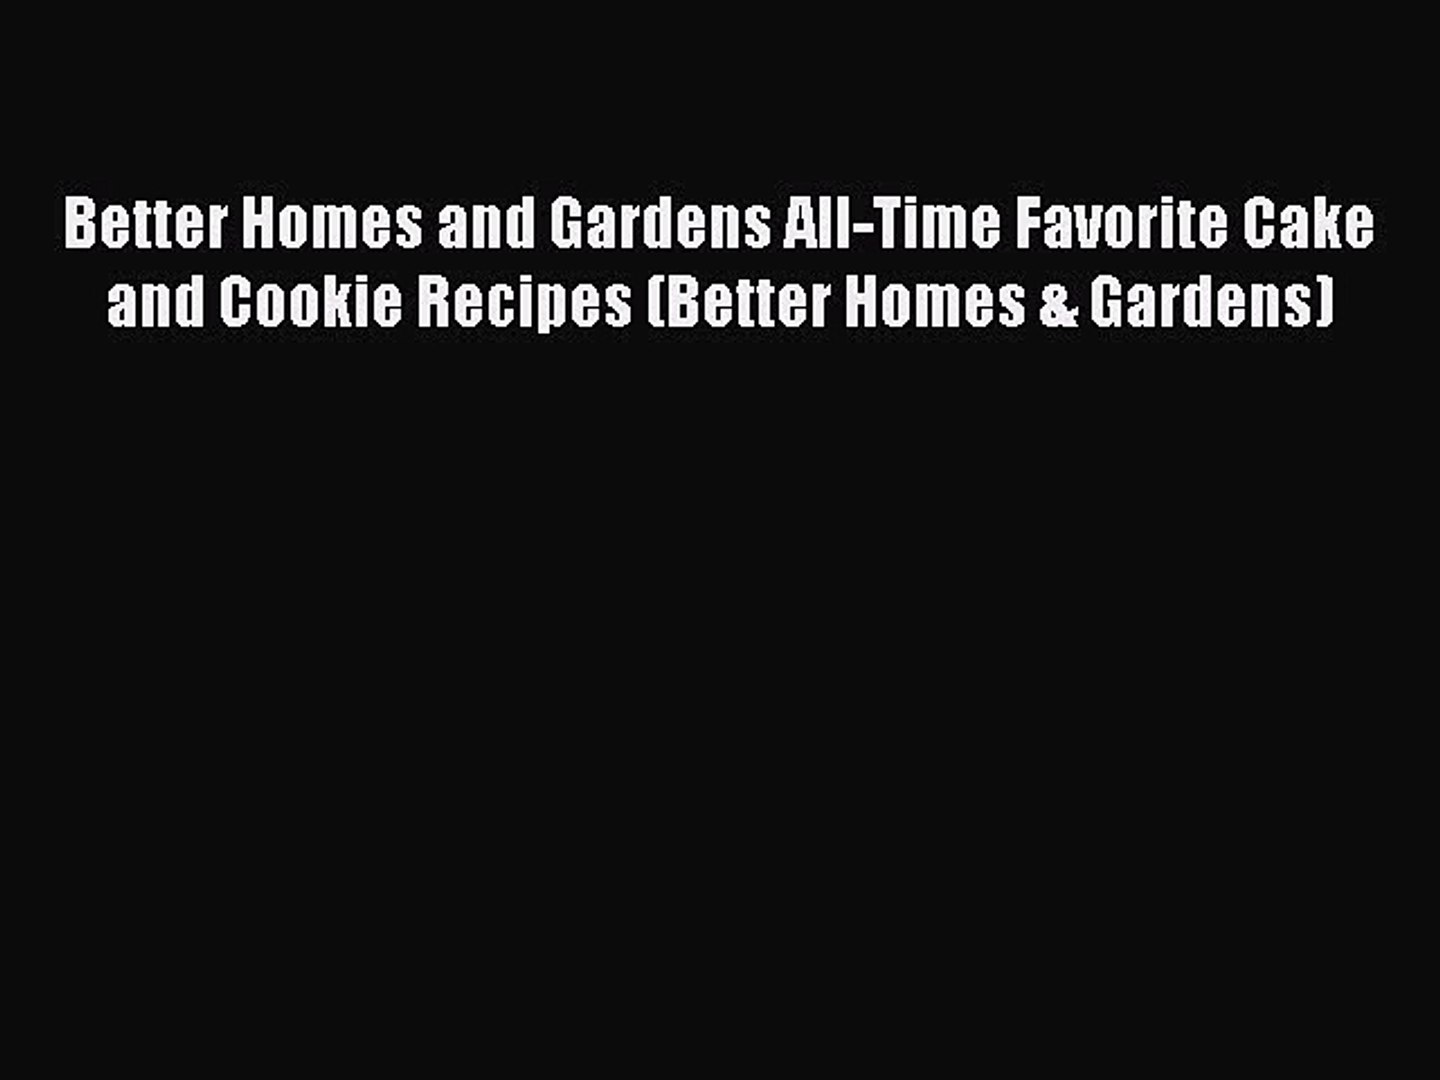 [PDF] Better Homes and Gardens All-Time Favorite Cake and Cookie Recipes (Better Homes & Gardens